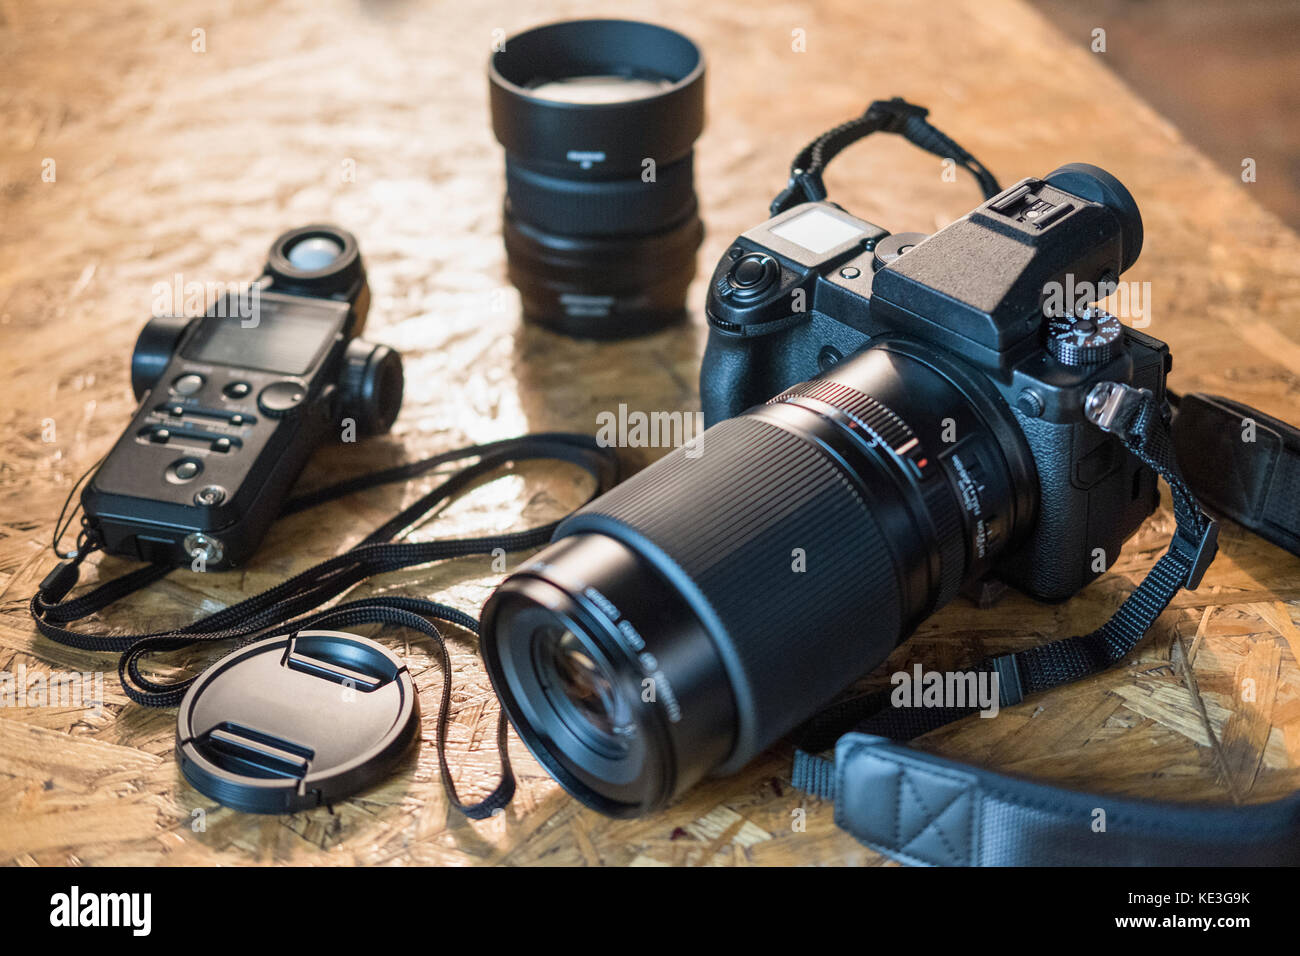 photo equipment and camera on a wooden table close-up. modern digital camera - Stock Image